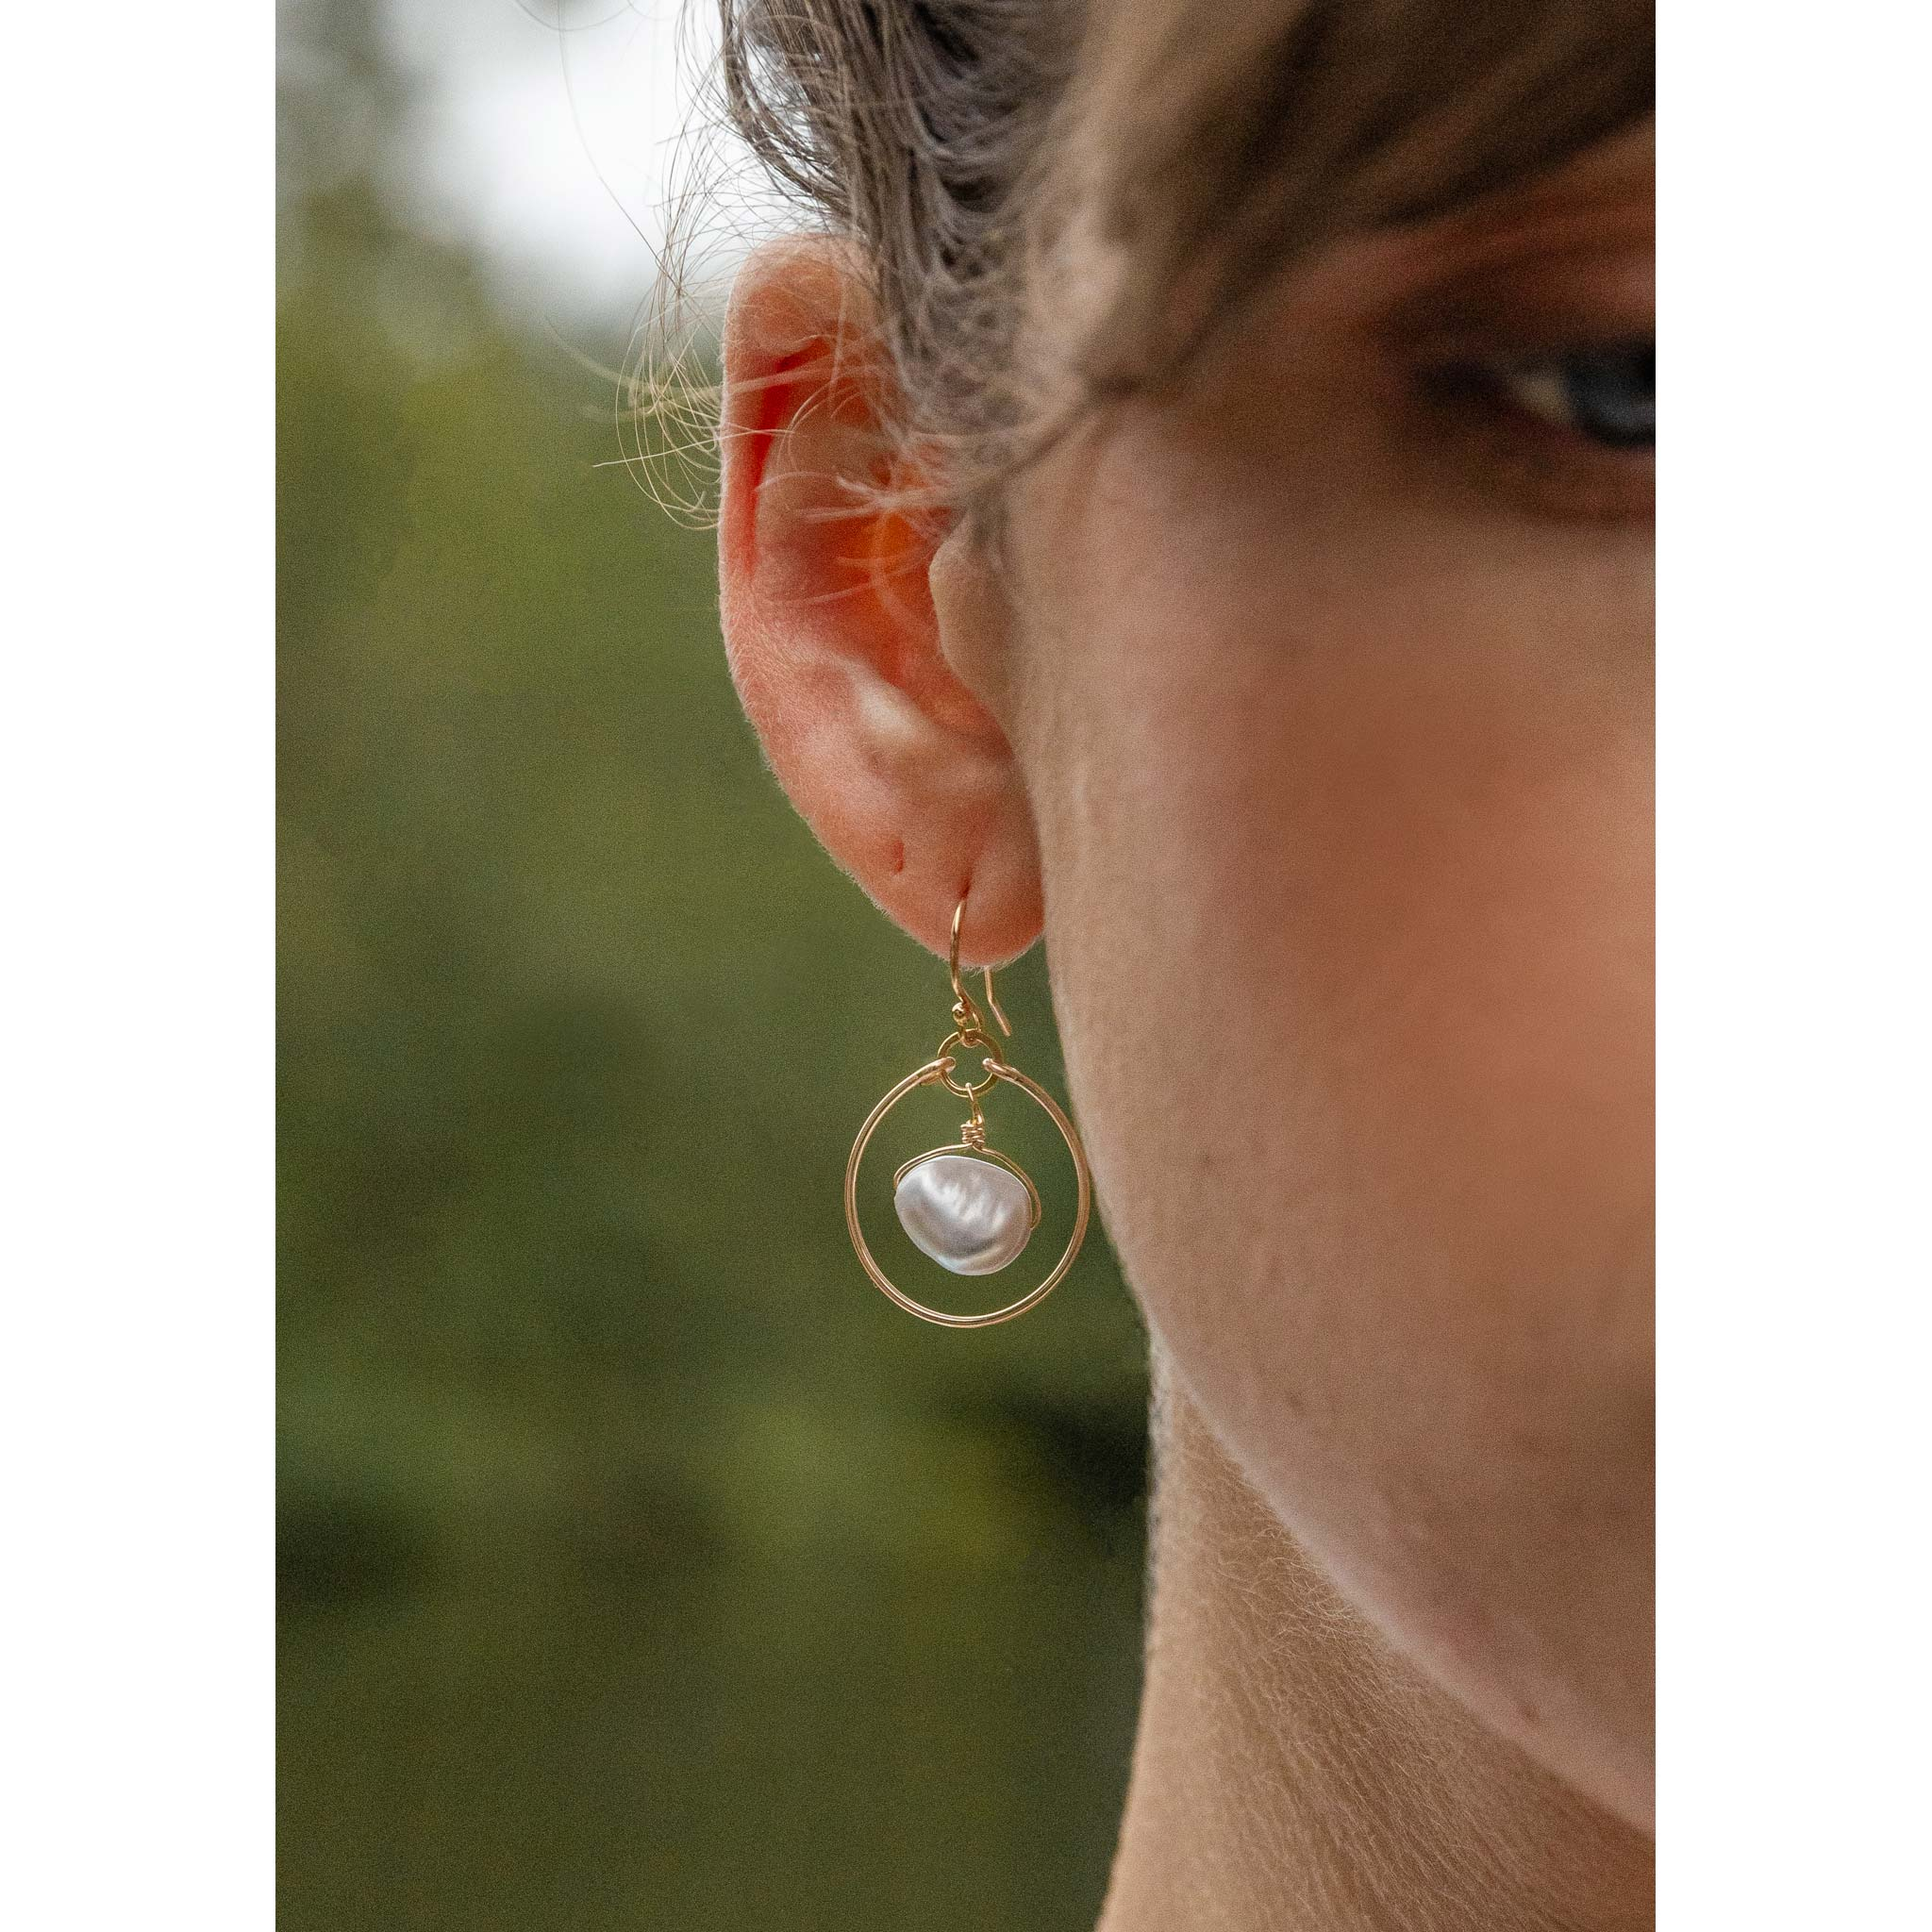 Wanderlust Life grey pearl hoop, drop earrings. Handmade jewellery in the UK.